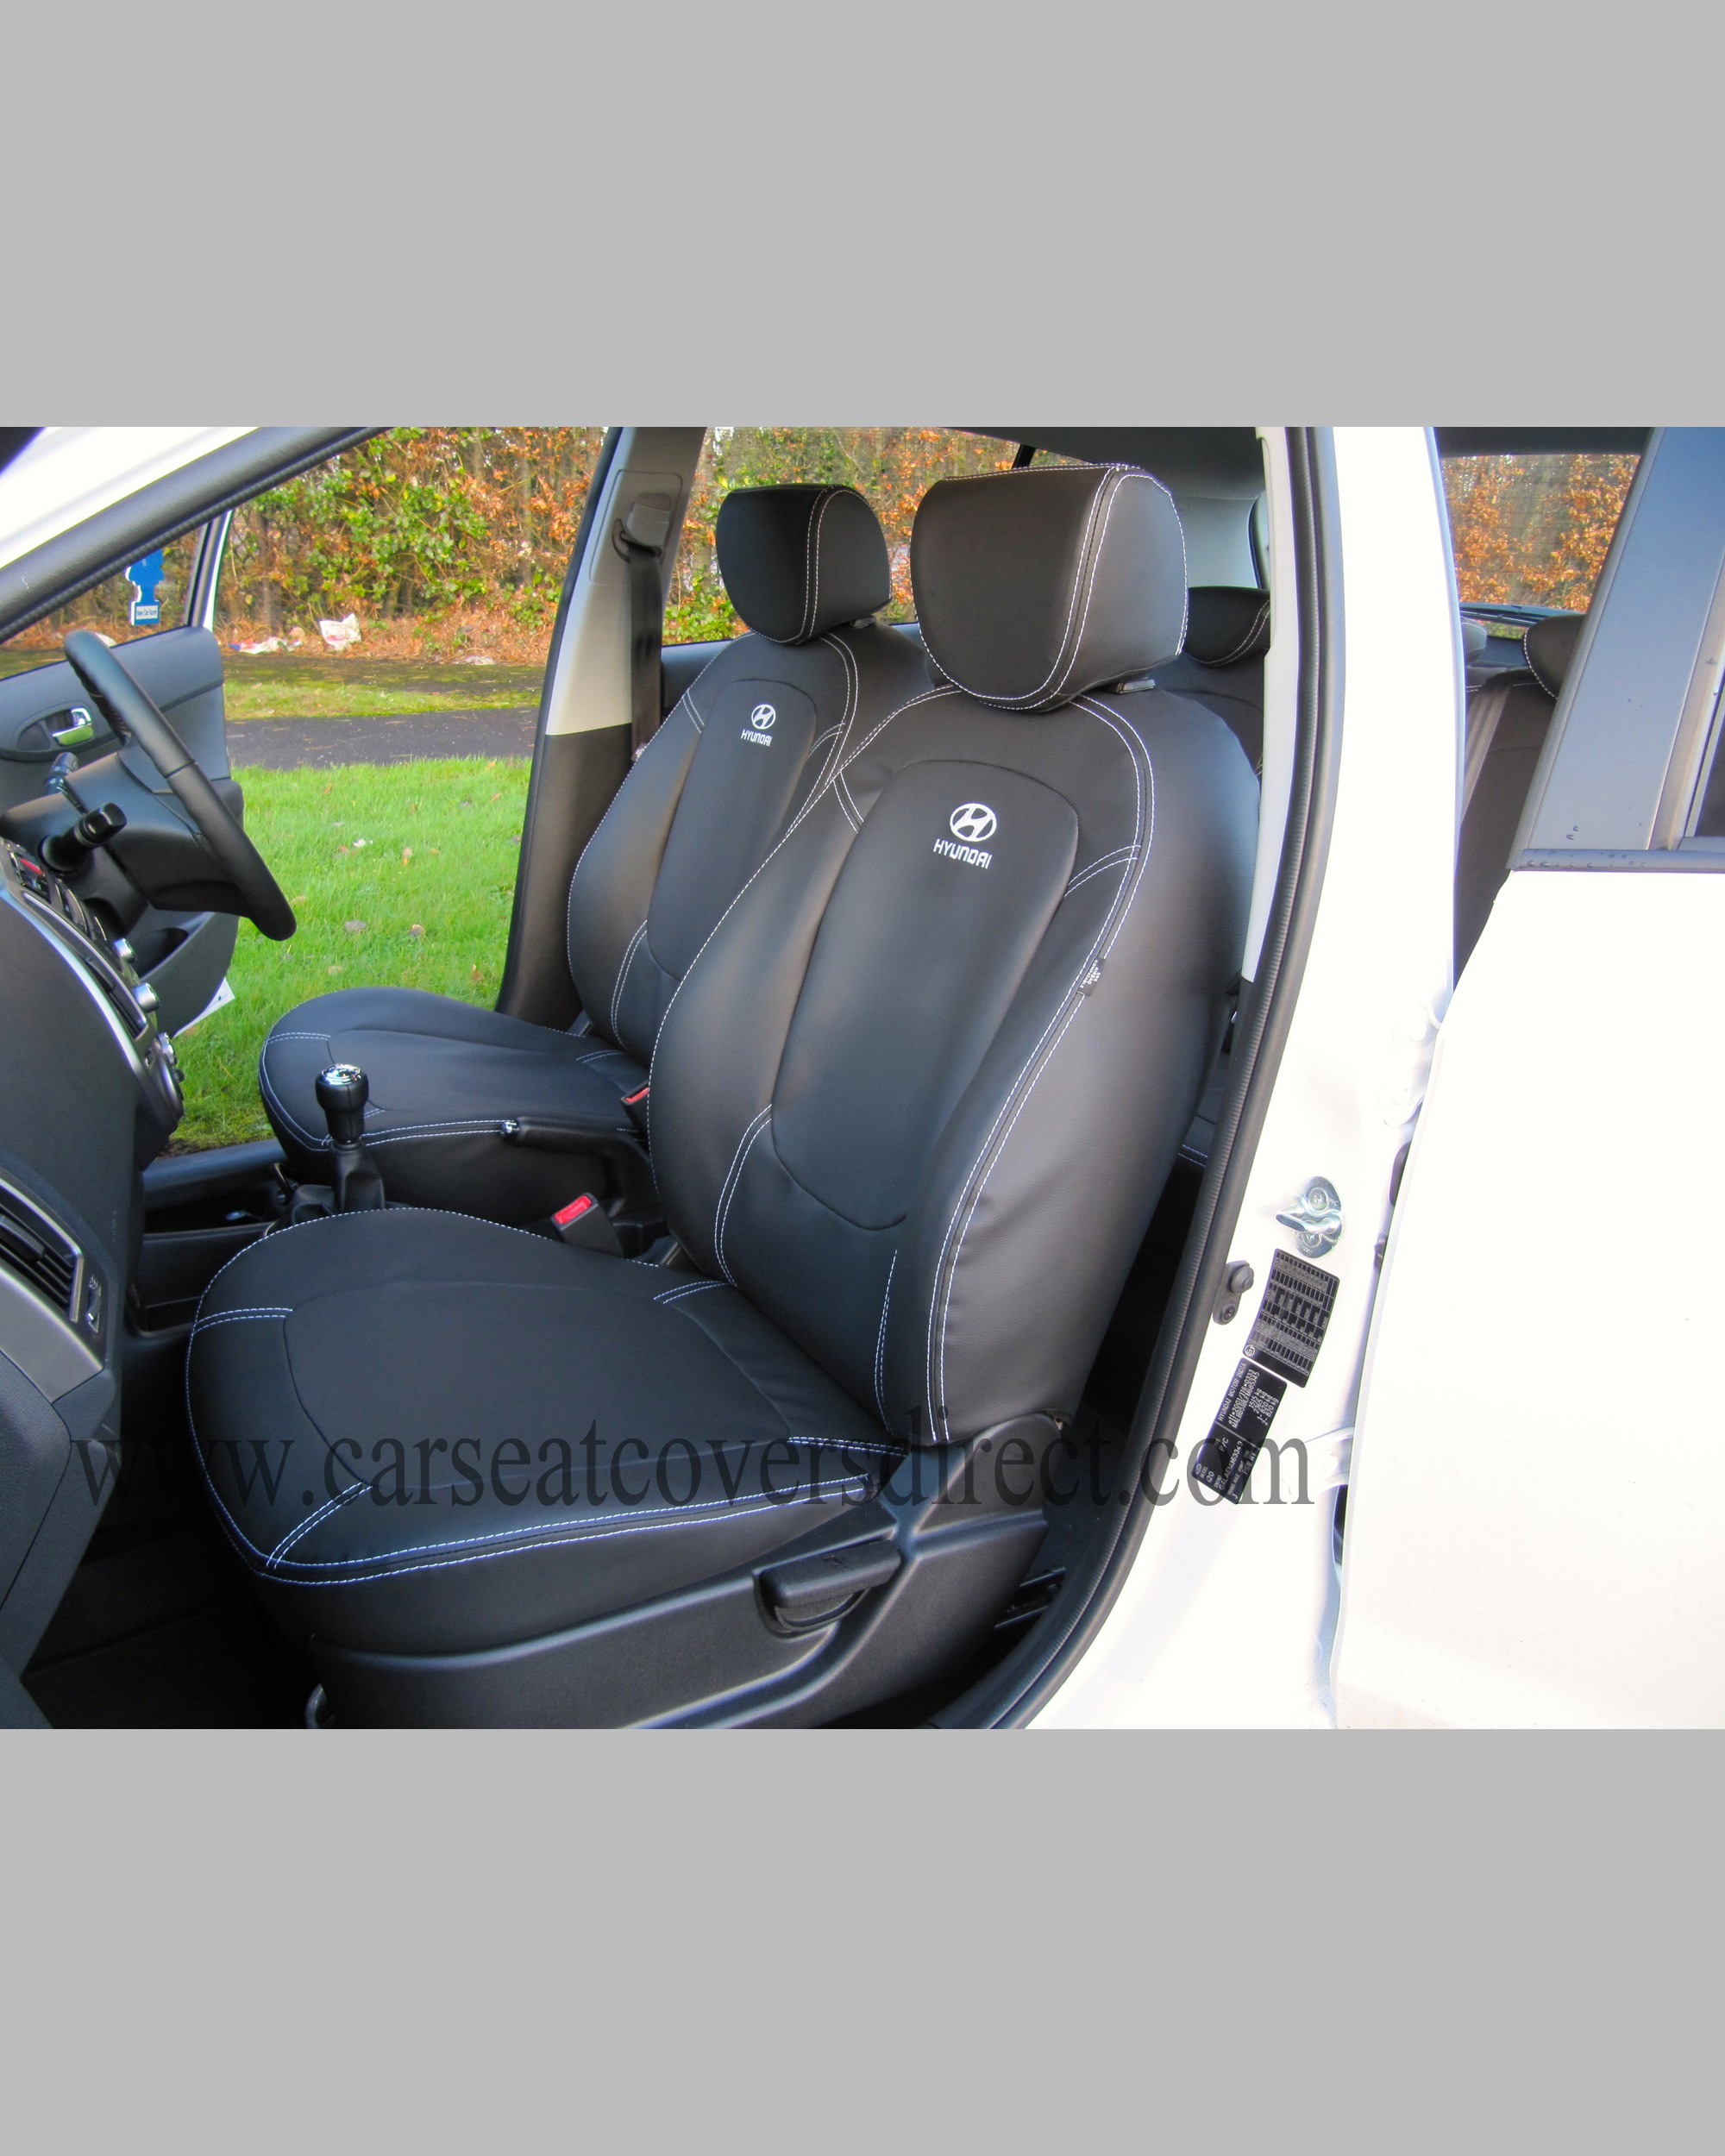 hyundai i20 seat covers car seat covers direct tailored to your choice. Black Bedroom Furniture Sets. Home Design Ideas